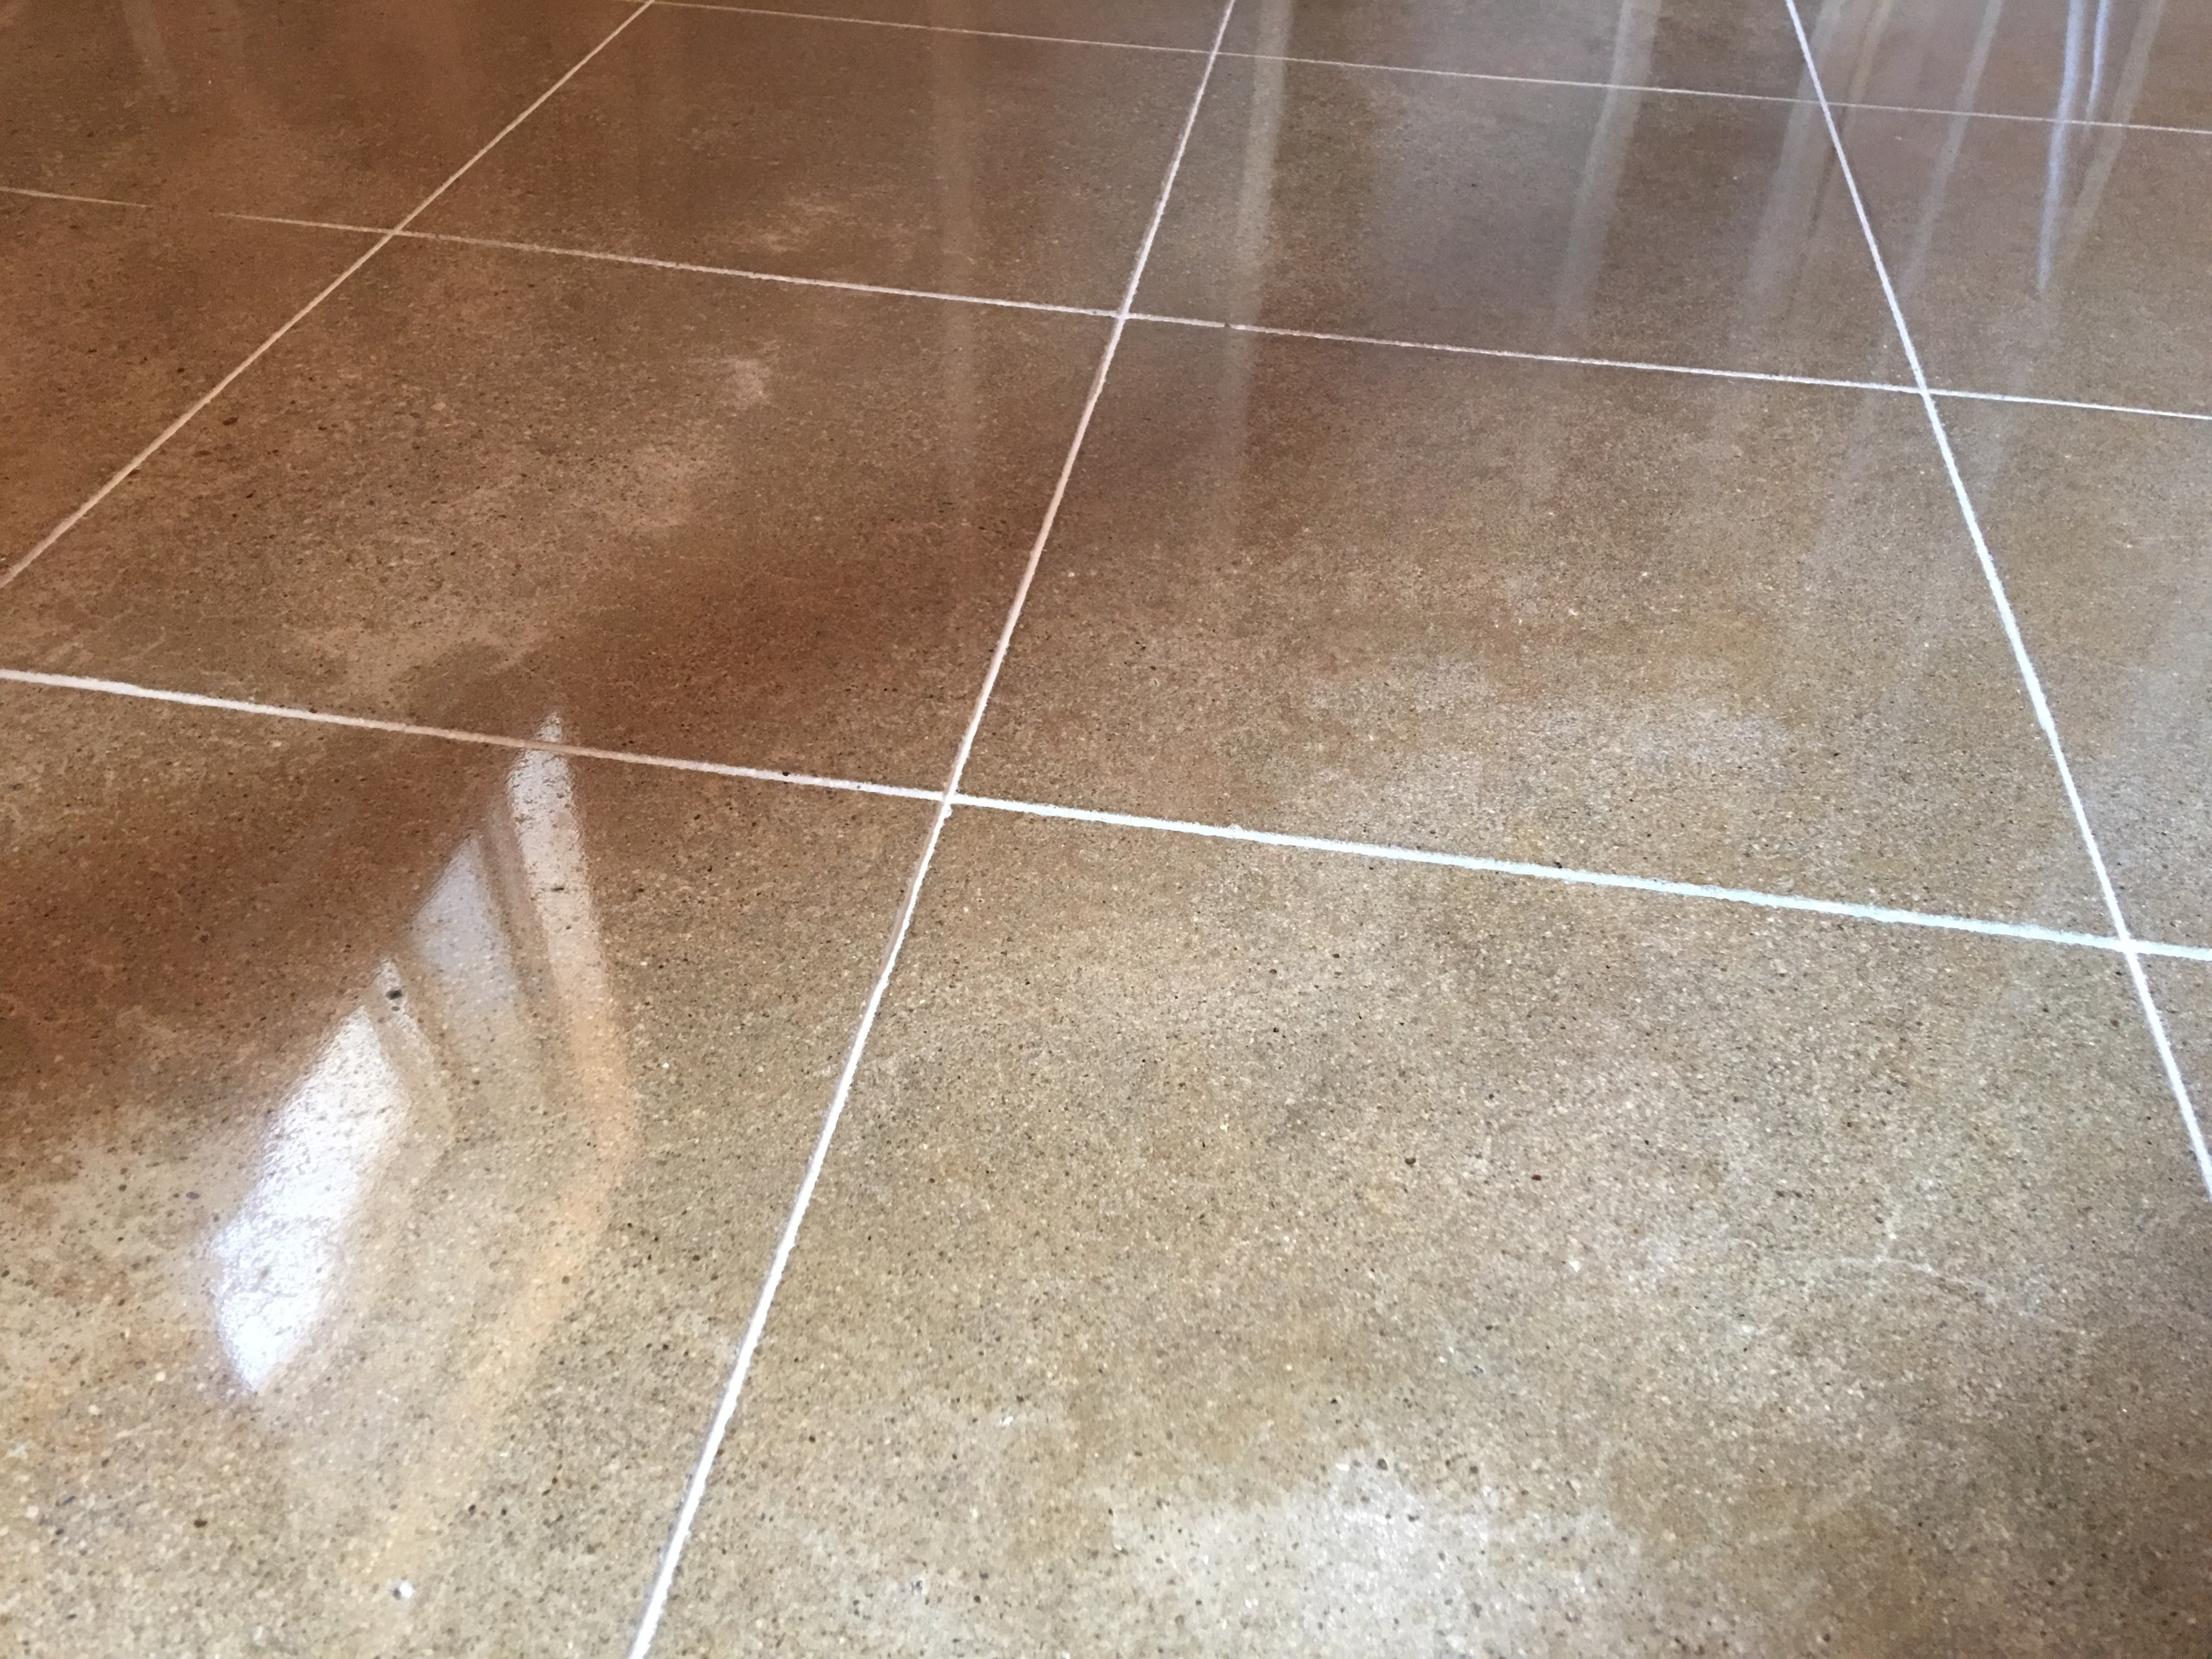 Scoring Lines in Polished Concrete Resembling Tile Grout